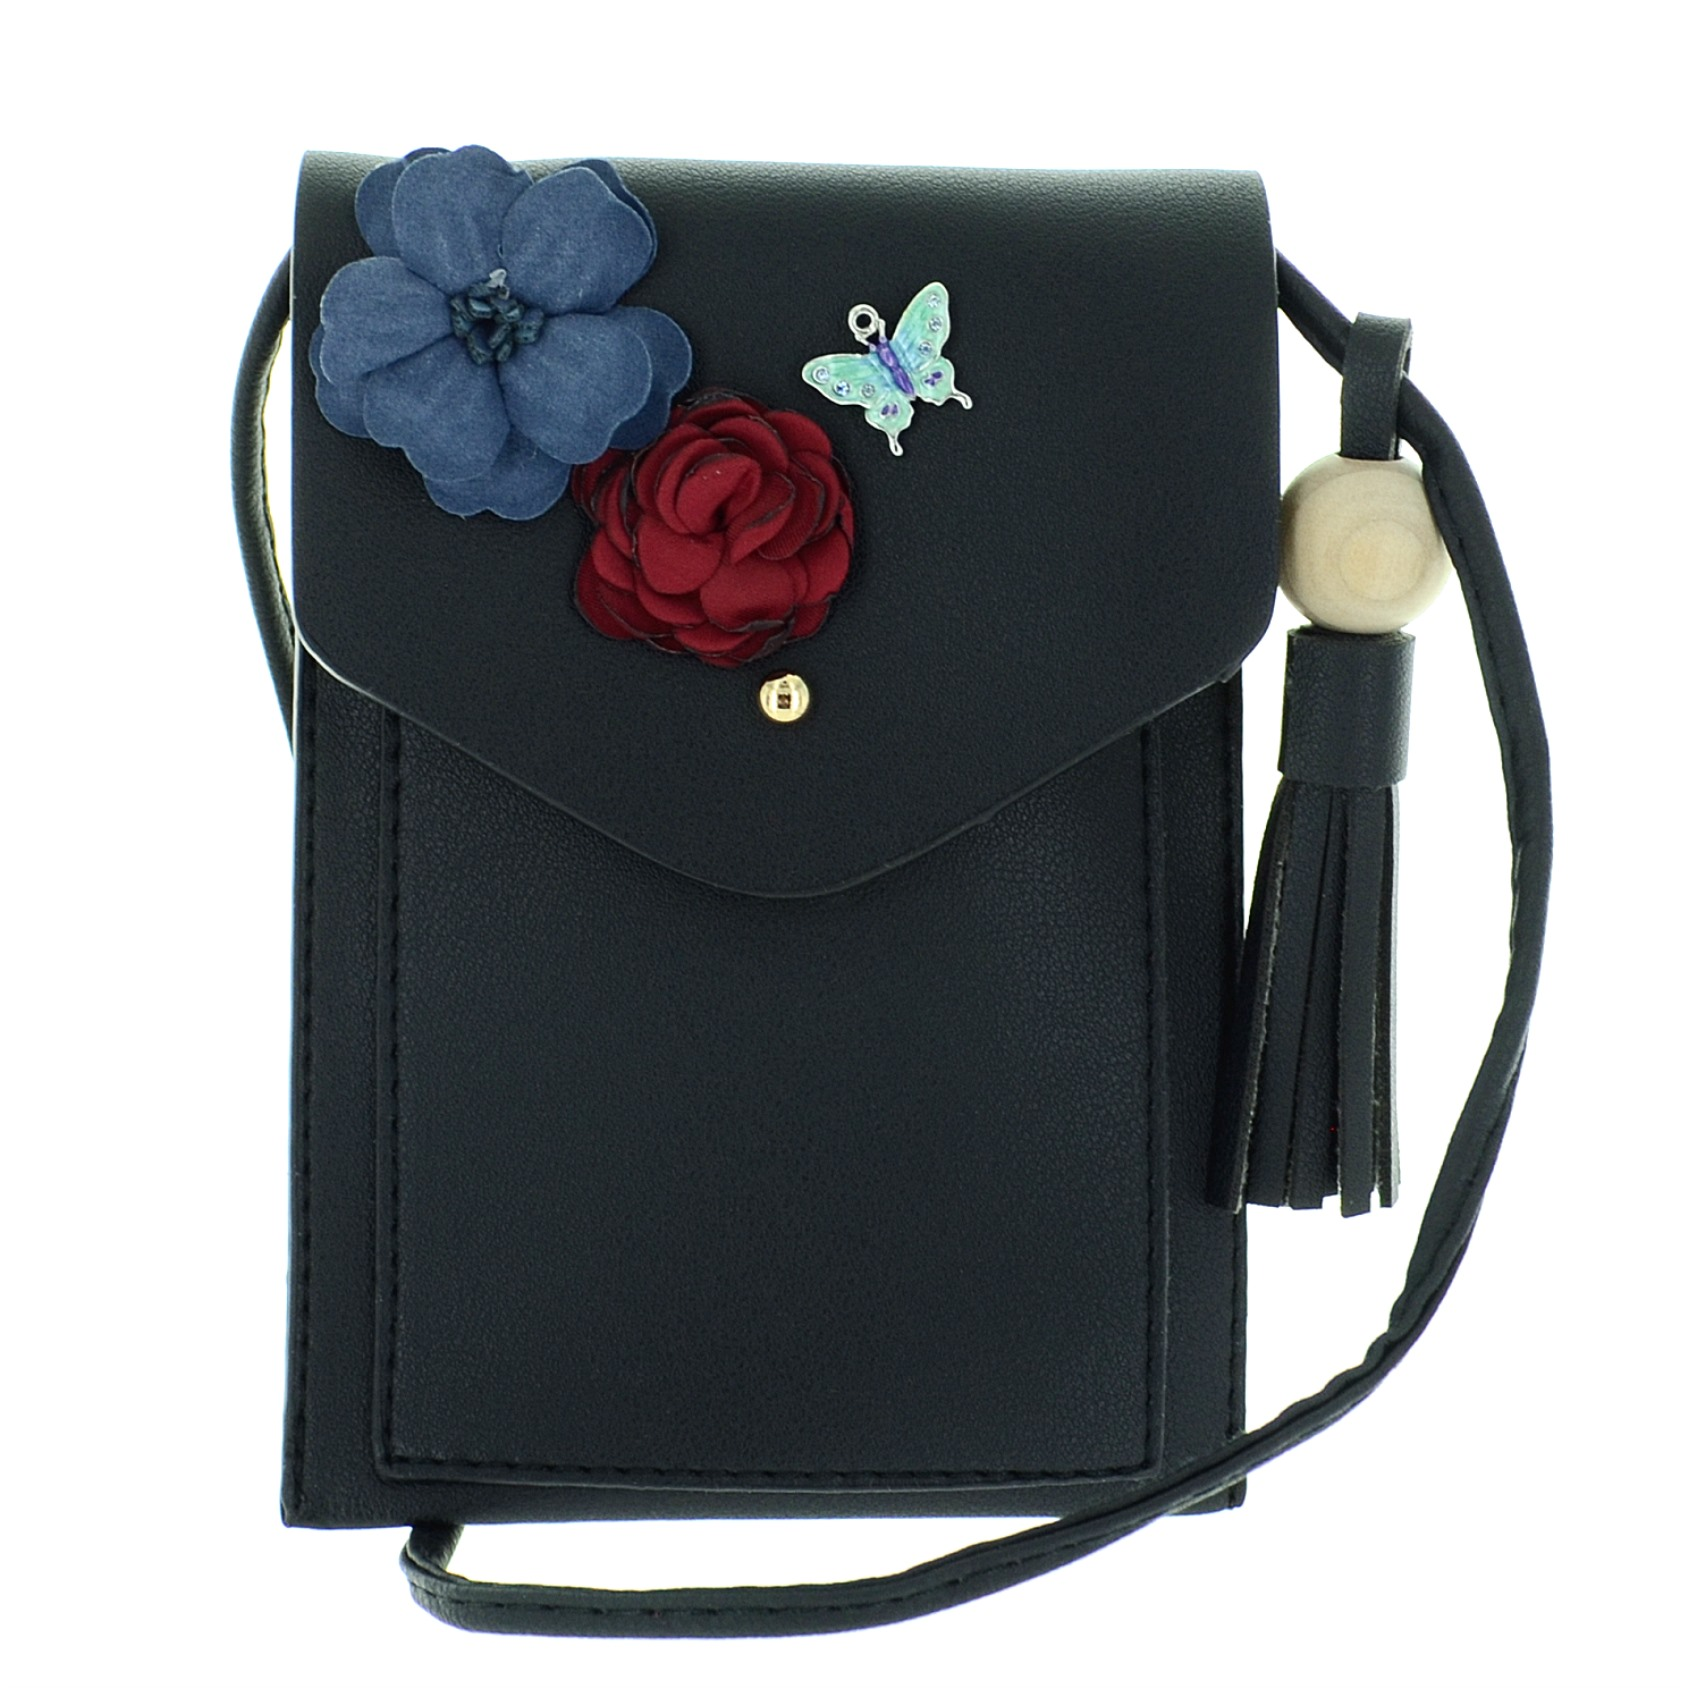 Floral Applique Faux Leather Crossbody Mini Bag | 322407-910 | ESwanNY